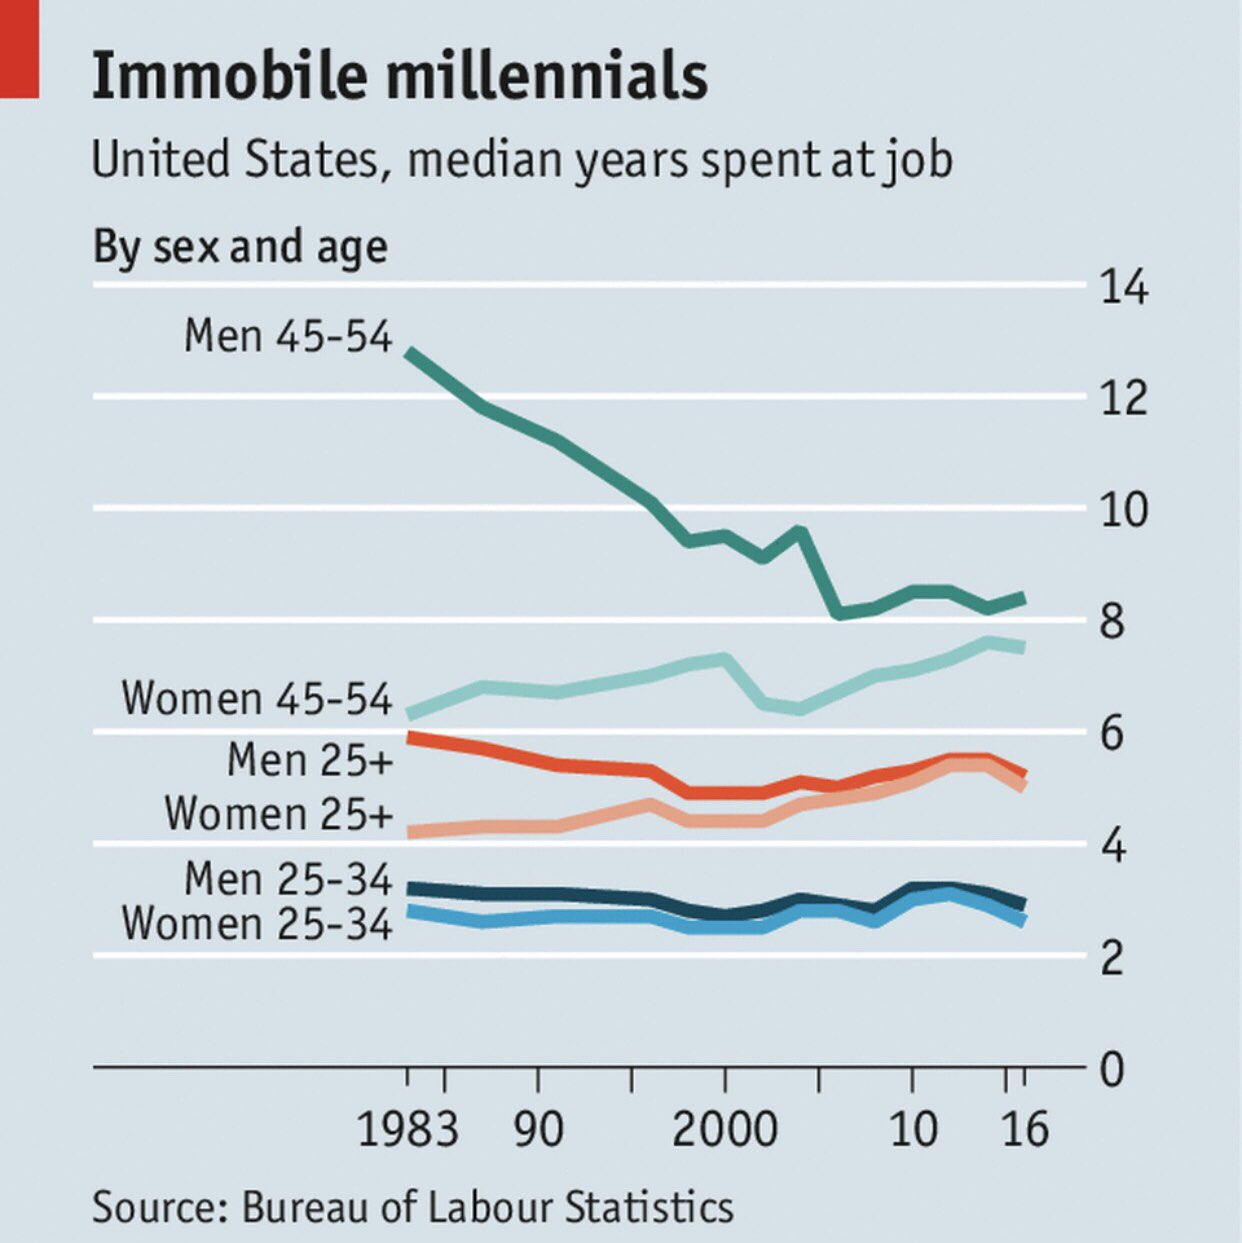 Data suggests younger parts of the workforce have always had shorter tenures. Are we over-blowing Millenials' tendency to switch jobs? https://t.co/8s0j5kCxhK